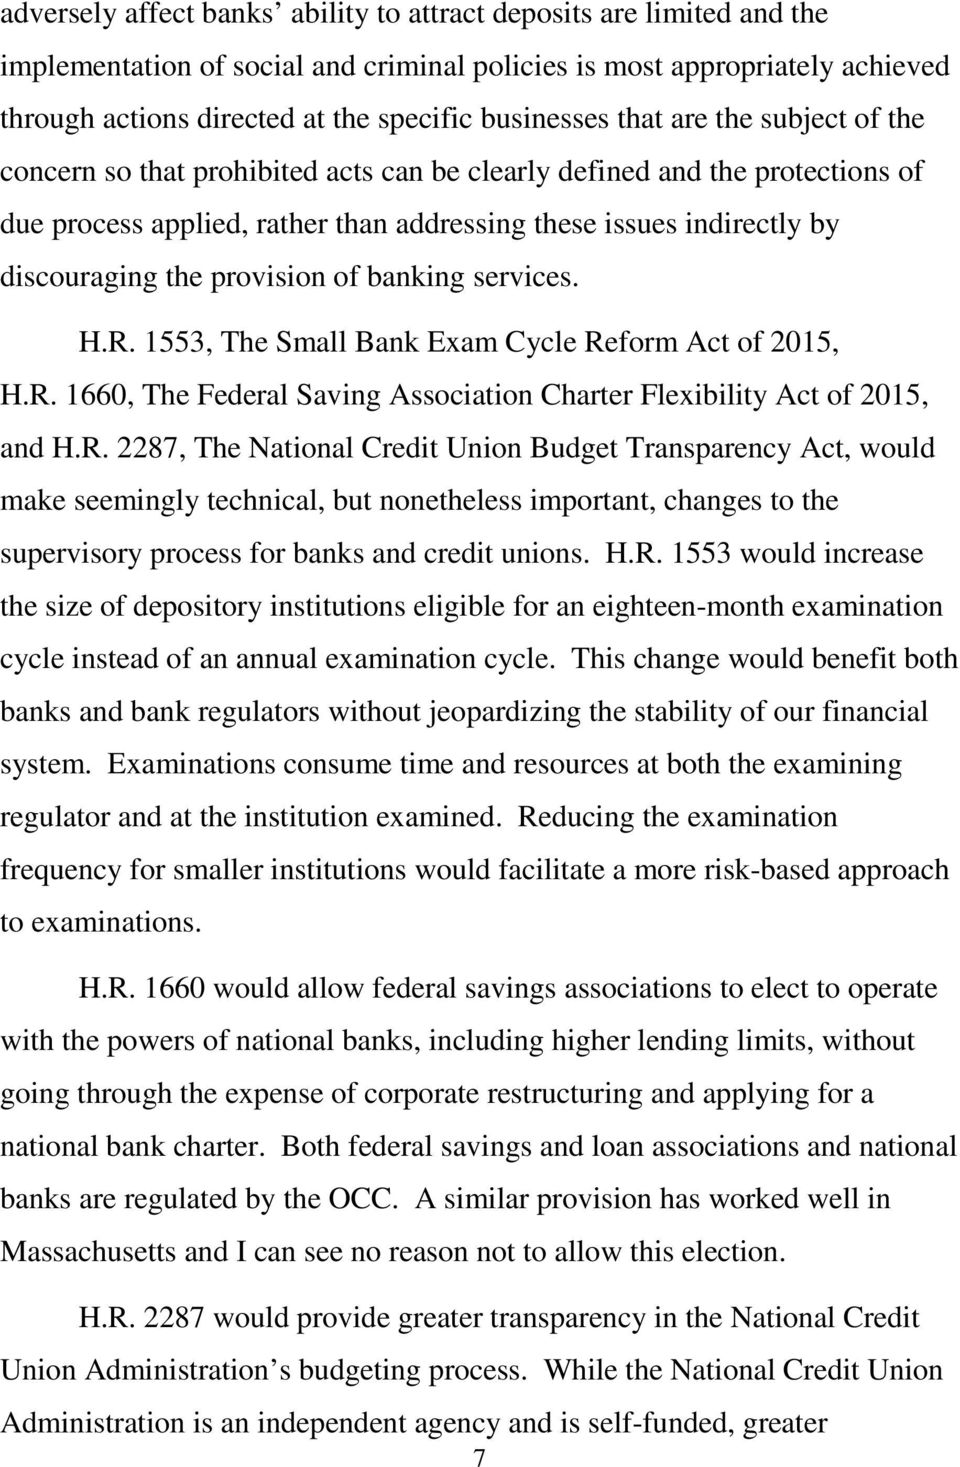 discouraging the provision of banking services. H.R.